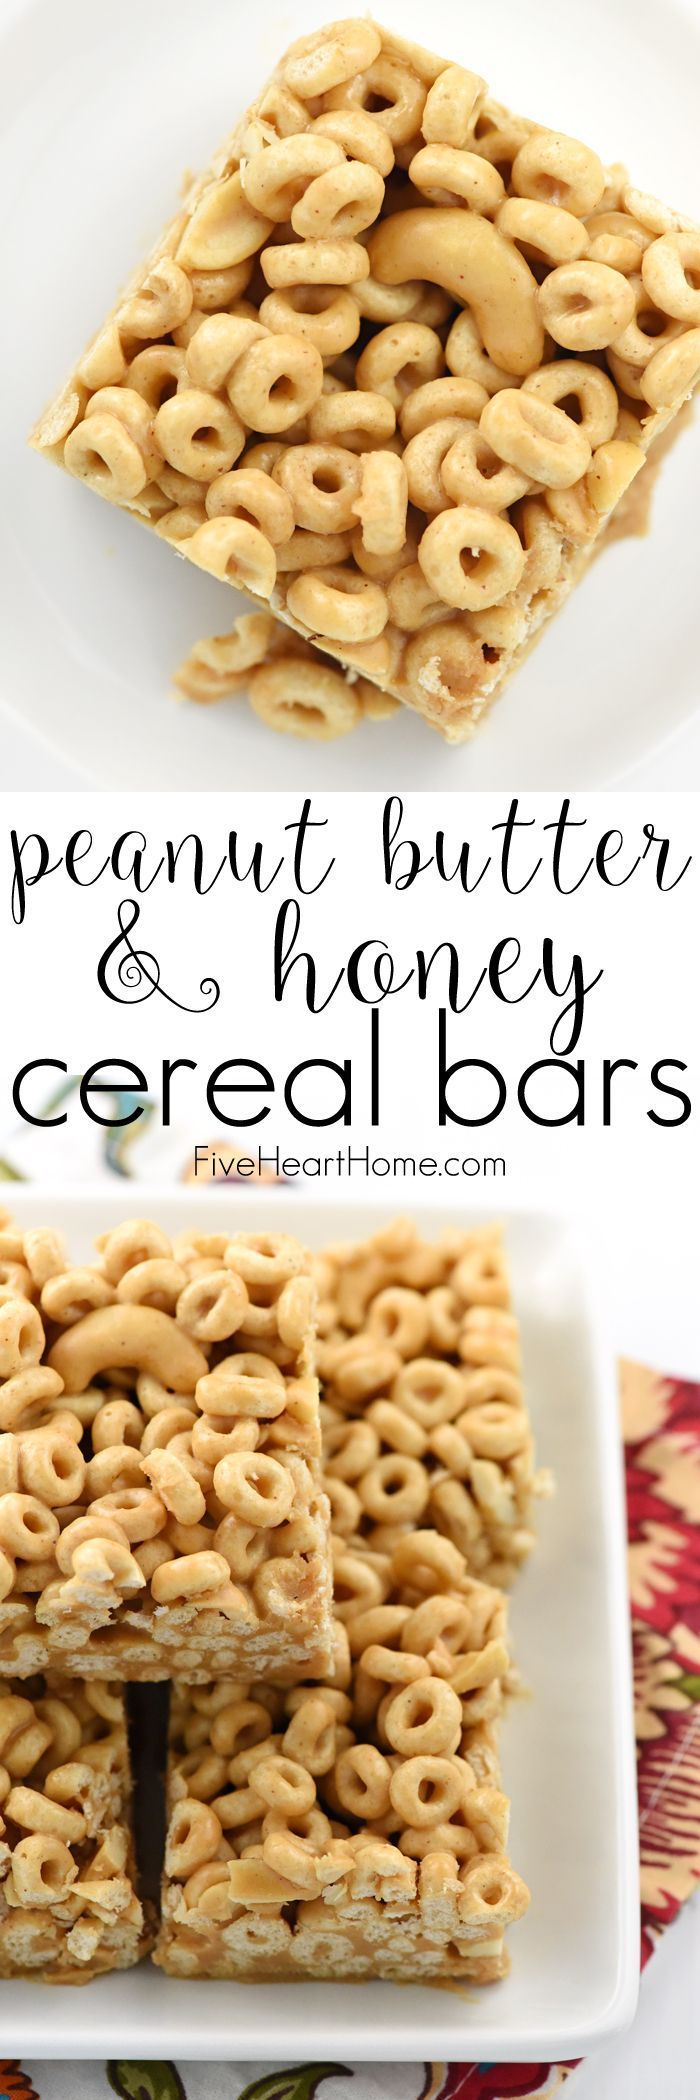 Peanut Butter & Honey Cereal Bars whole grain toasted